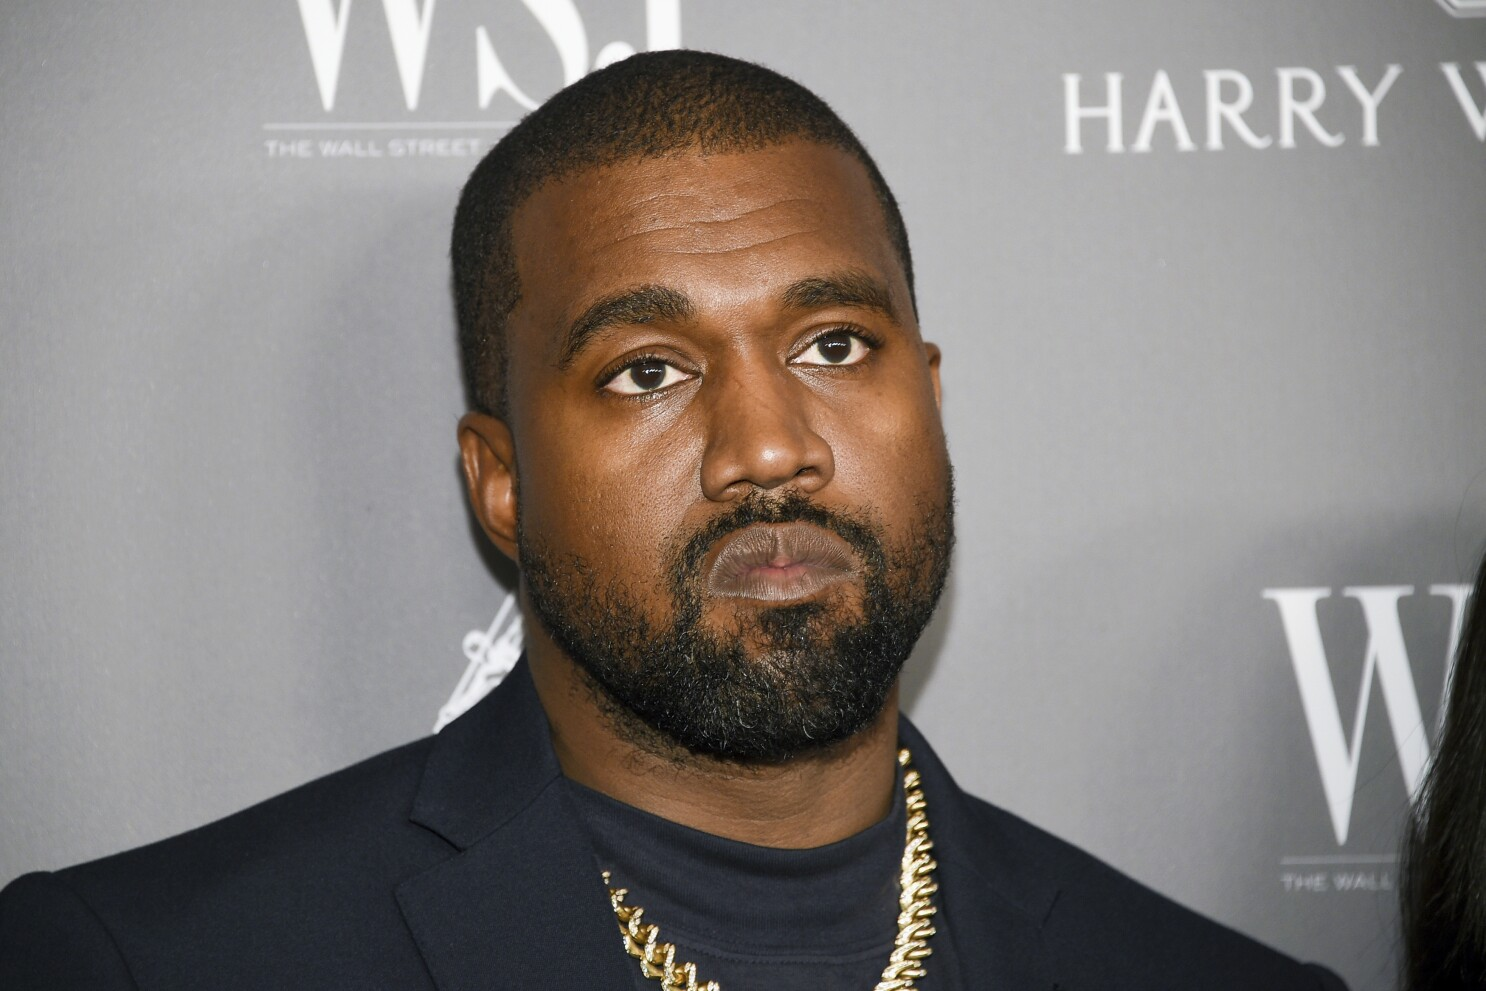 Kanye West's Yeezy brand (minus sneakers) falls into the Gap - Los Angeles Times